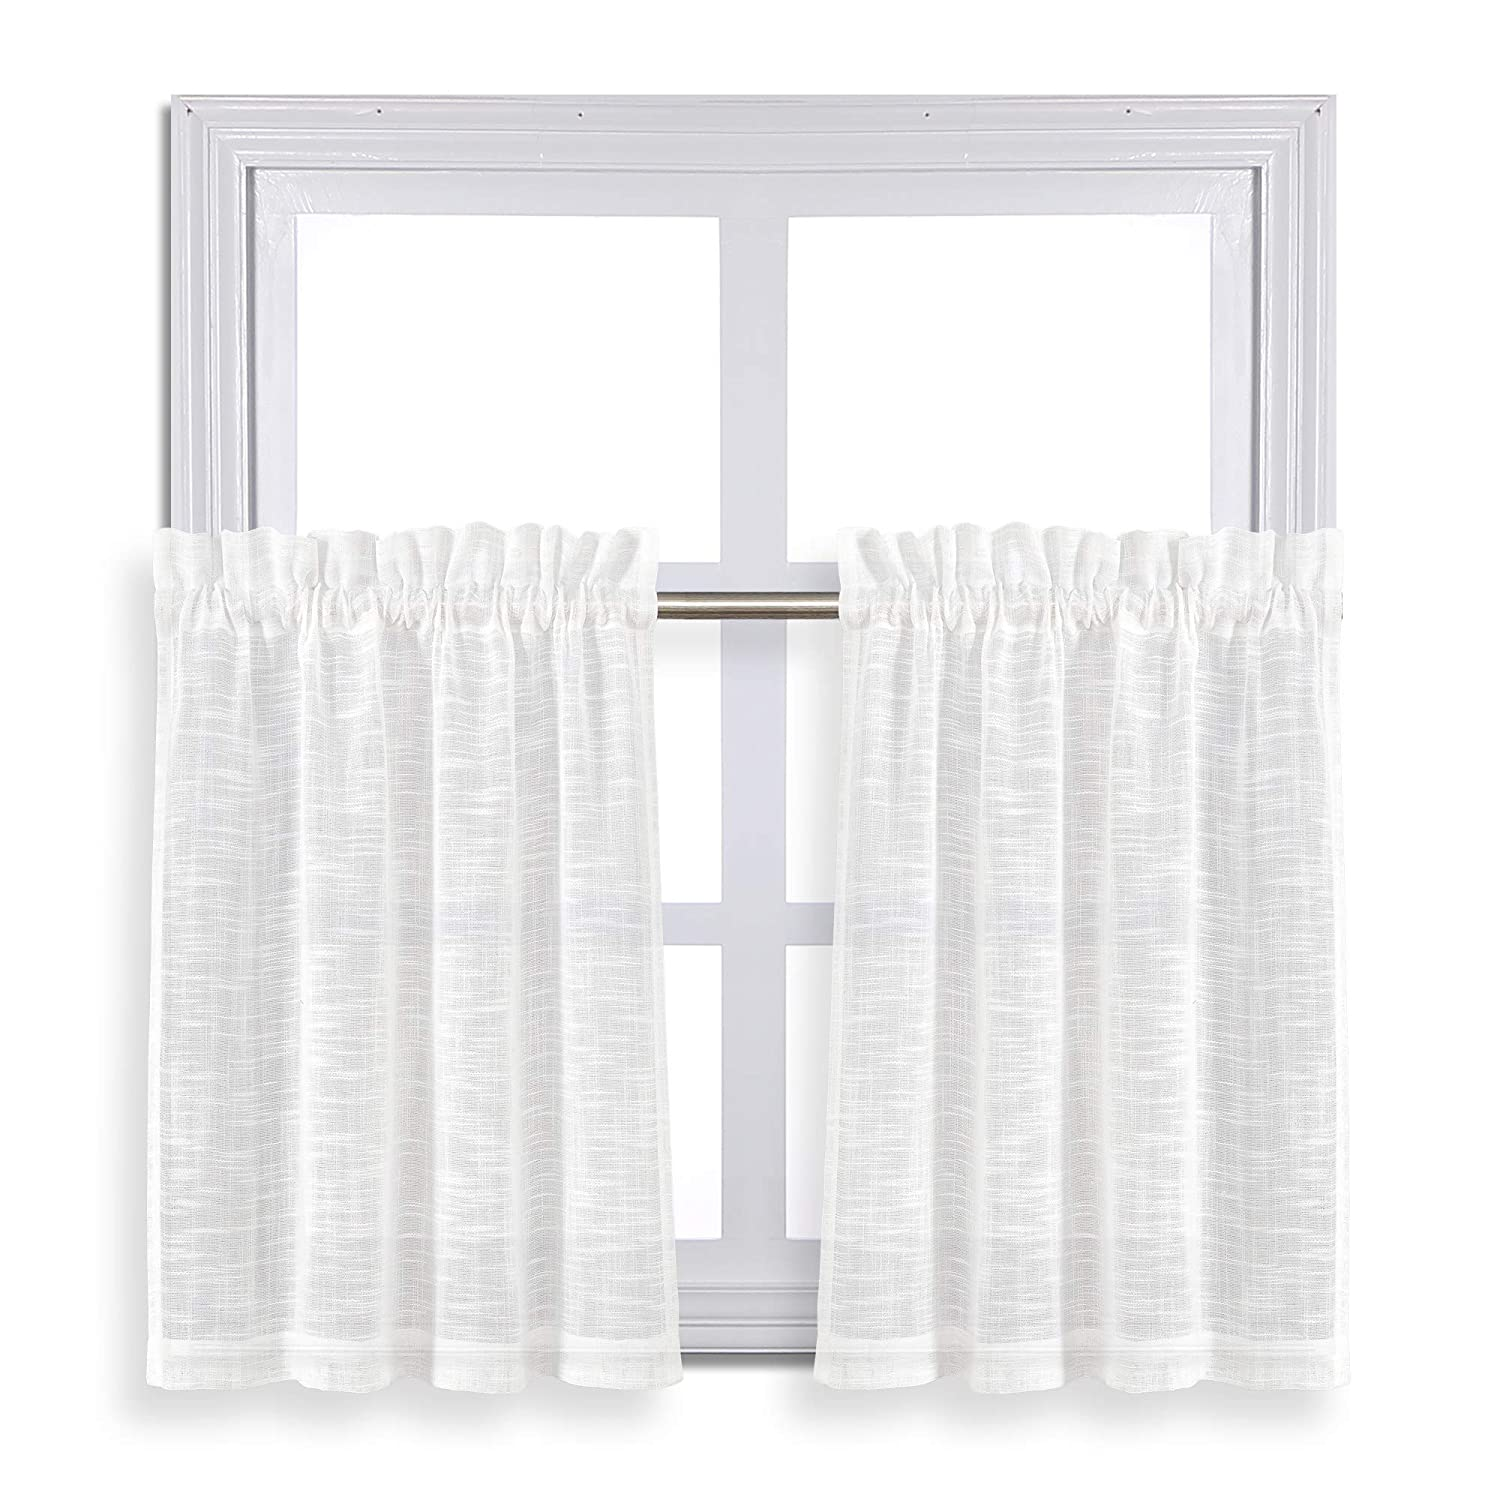 Zceconce Sheer Linen Study Curtains for Small Window Curtain Set 24 Inch Length Silvery Thread Checkered Design on White Voile Curtains Total Size 72 Inch Wide (36